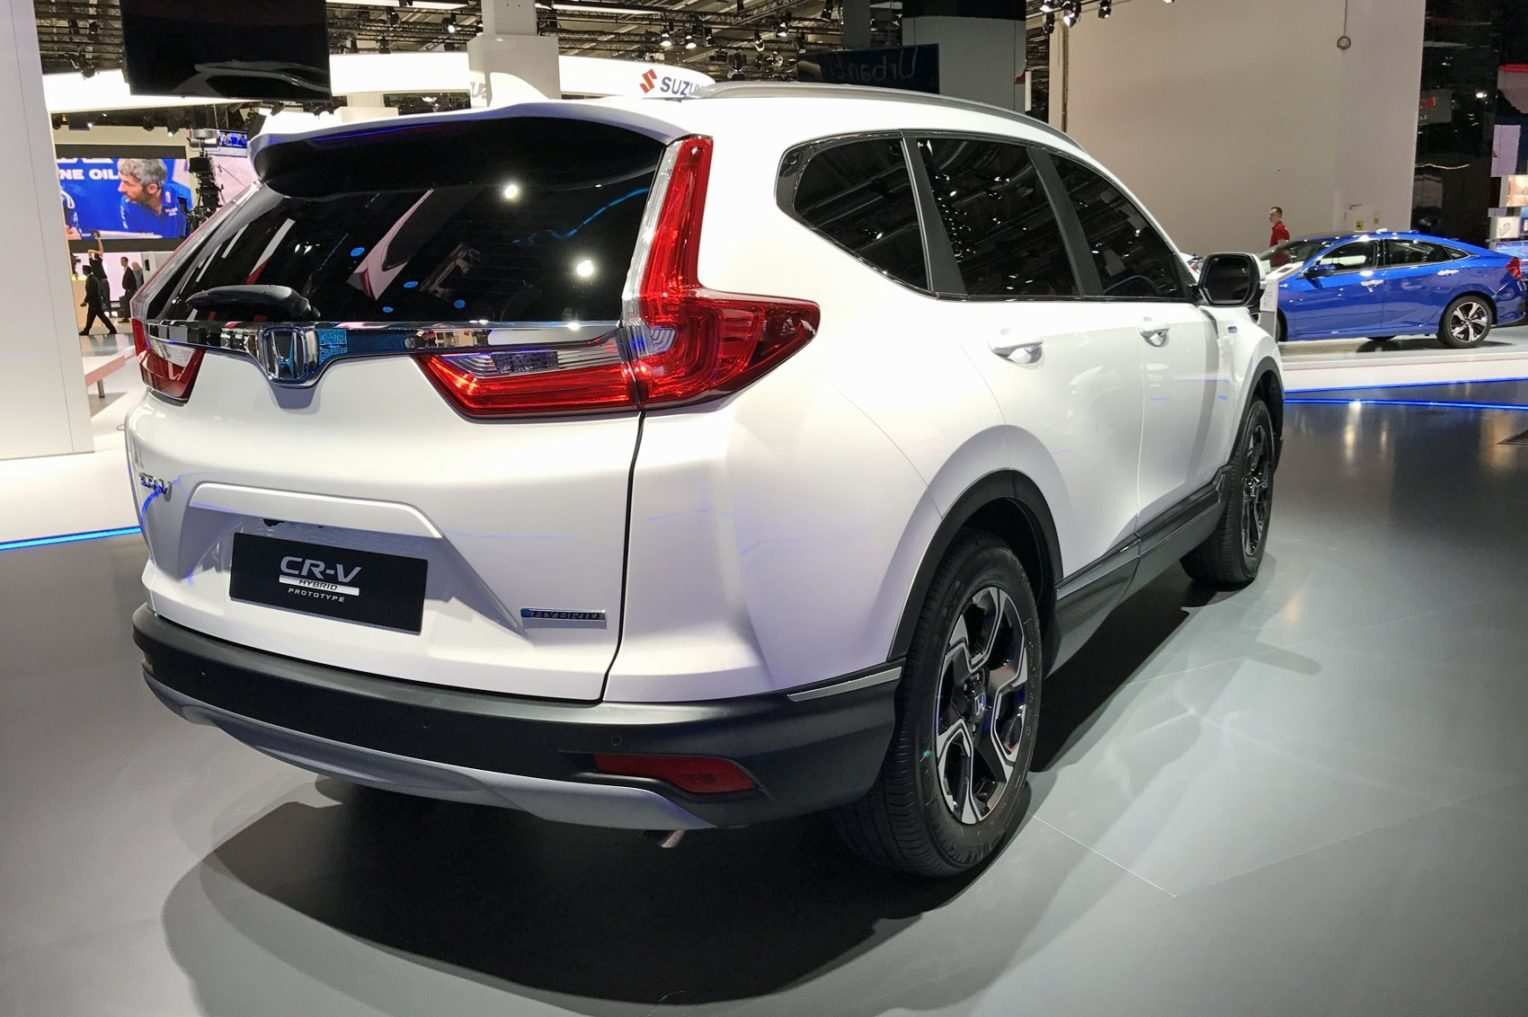 85 Best Review Honda Crv 2020 Redesign Model by Honda Crv 2020 Redesign